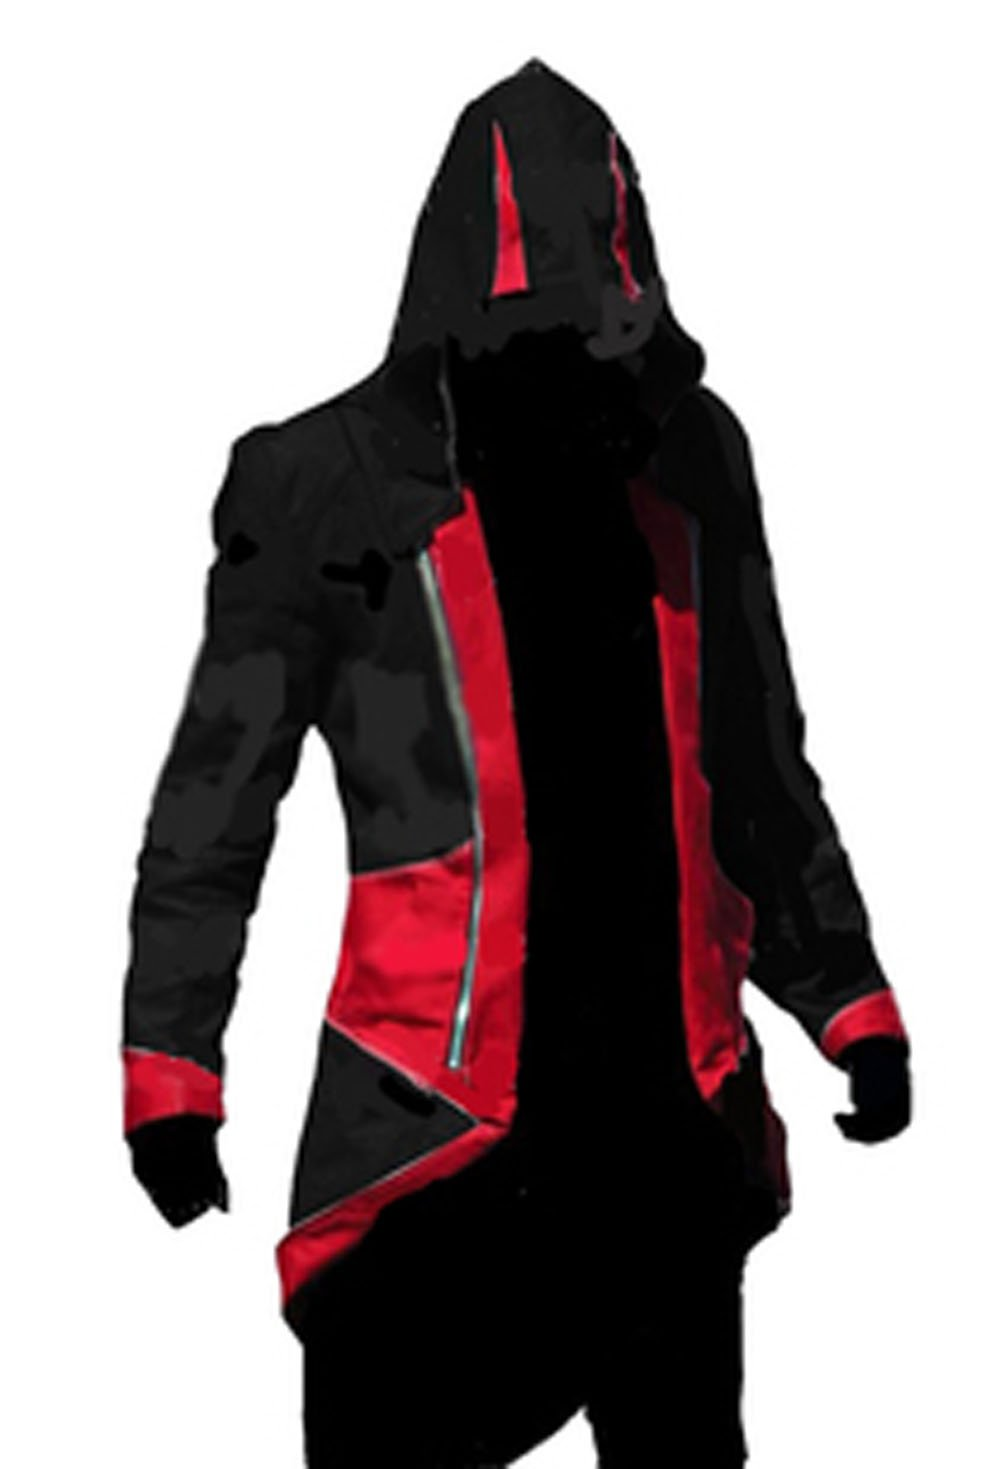 Fantasycart Connor Kenway Costume Hoodie Costume Jacket Coat Black&Red Size L by fantasycart